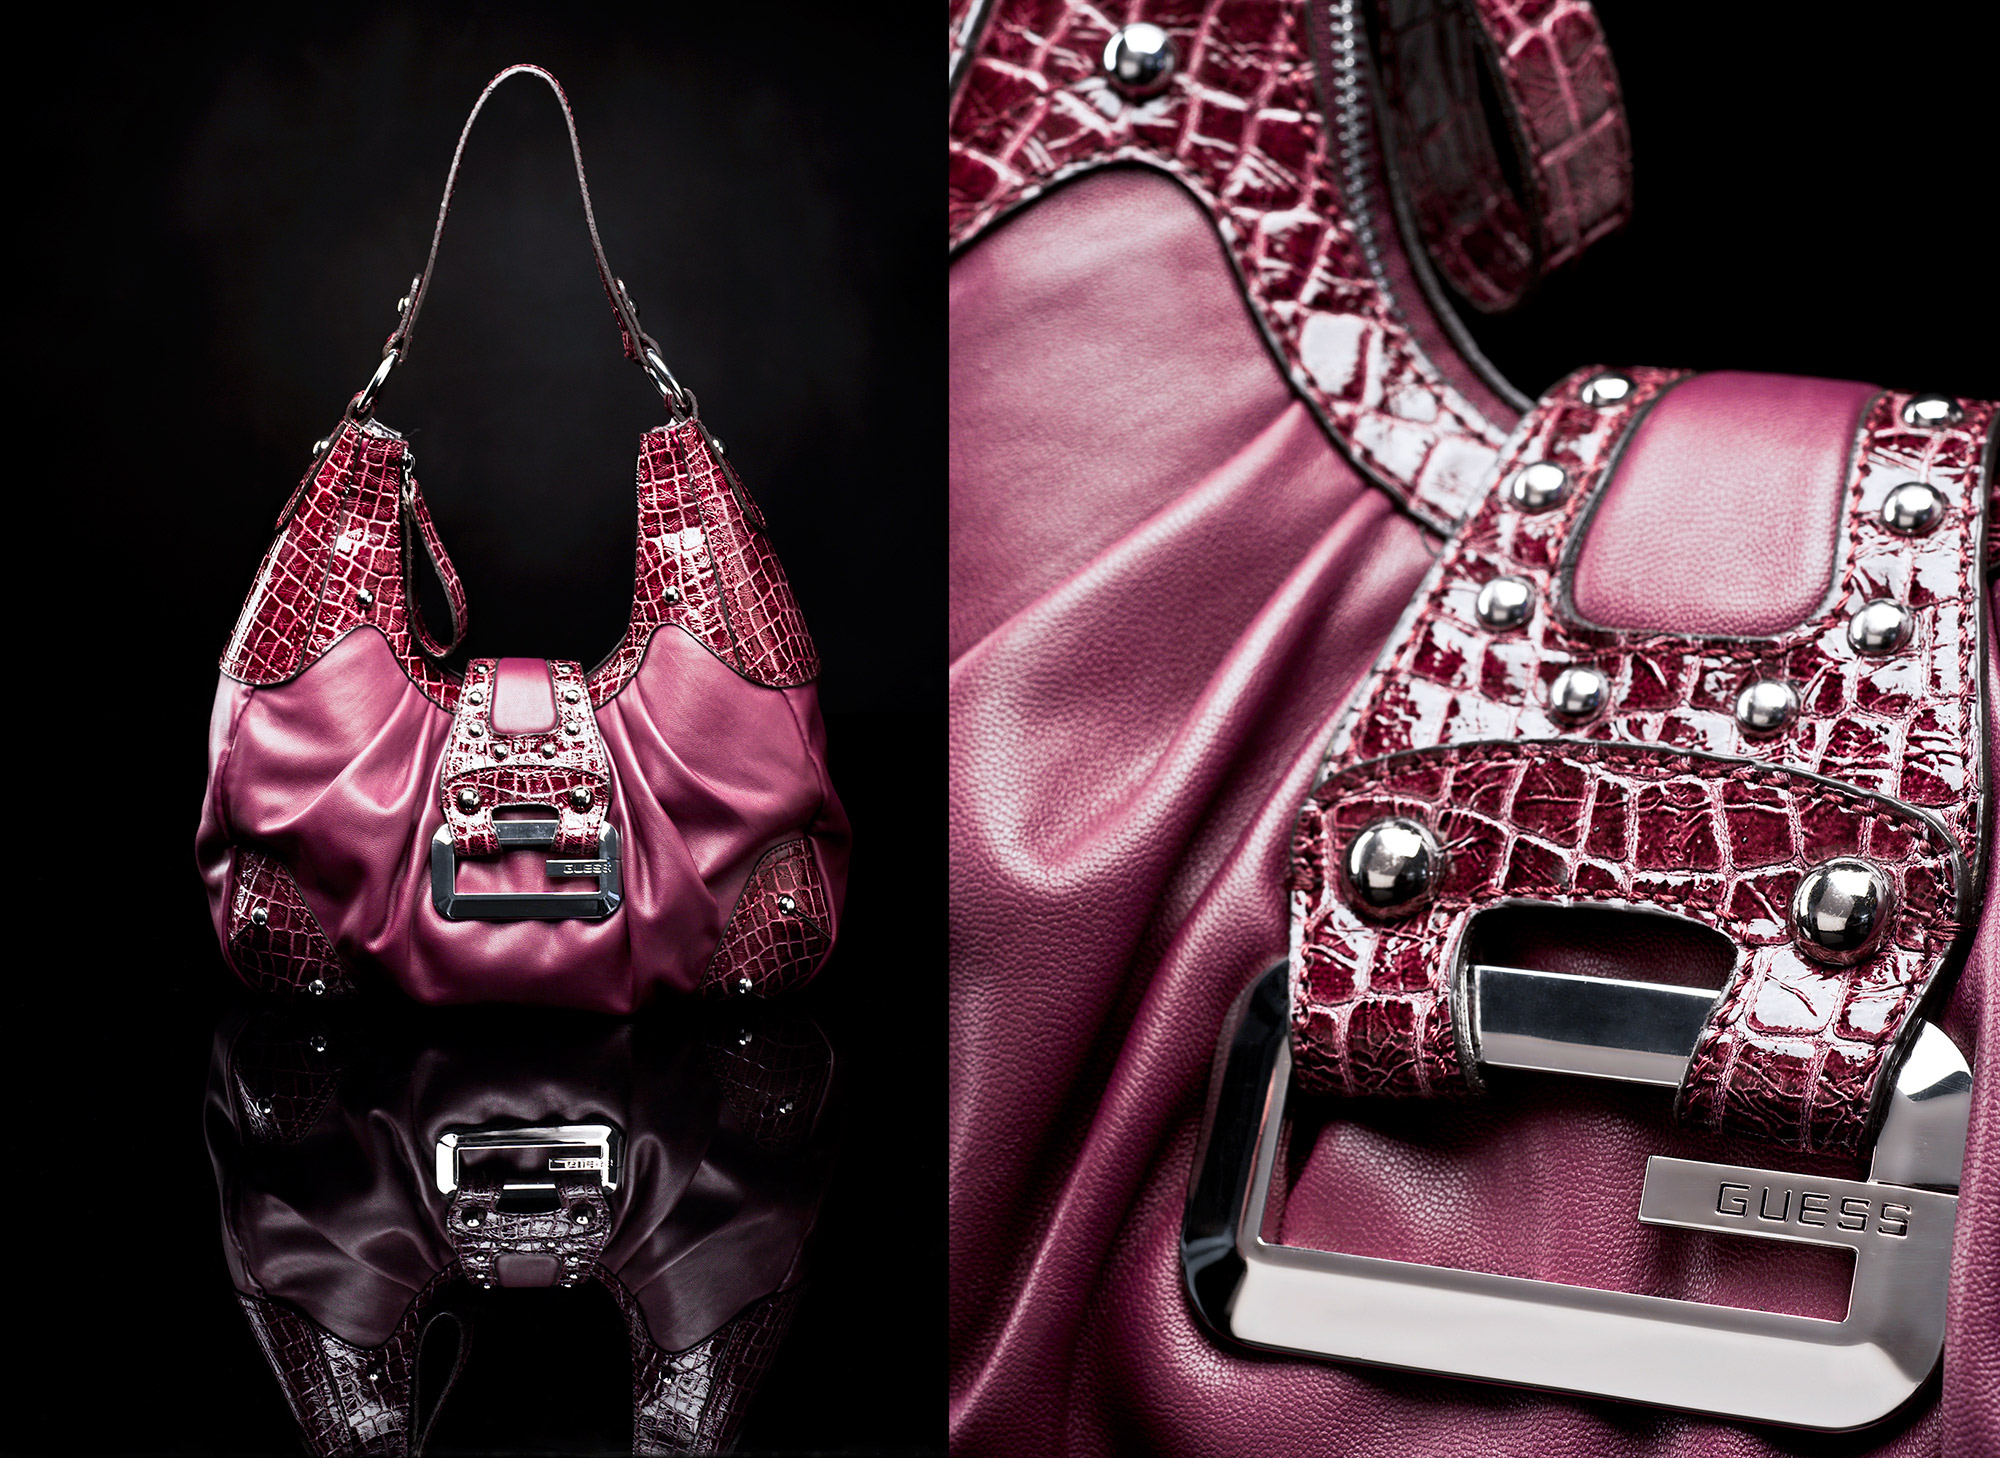 Guess! Purse © Shawn Collie Photography